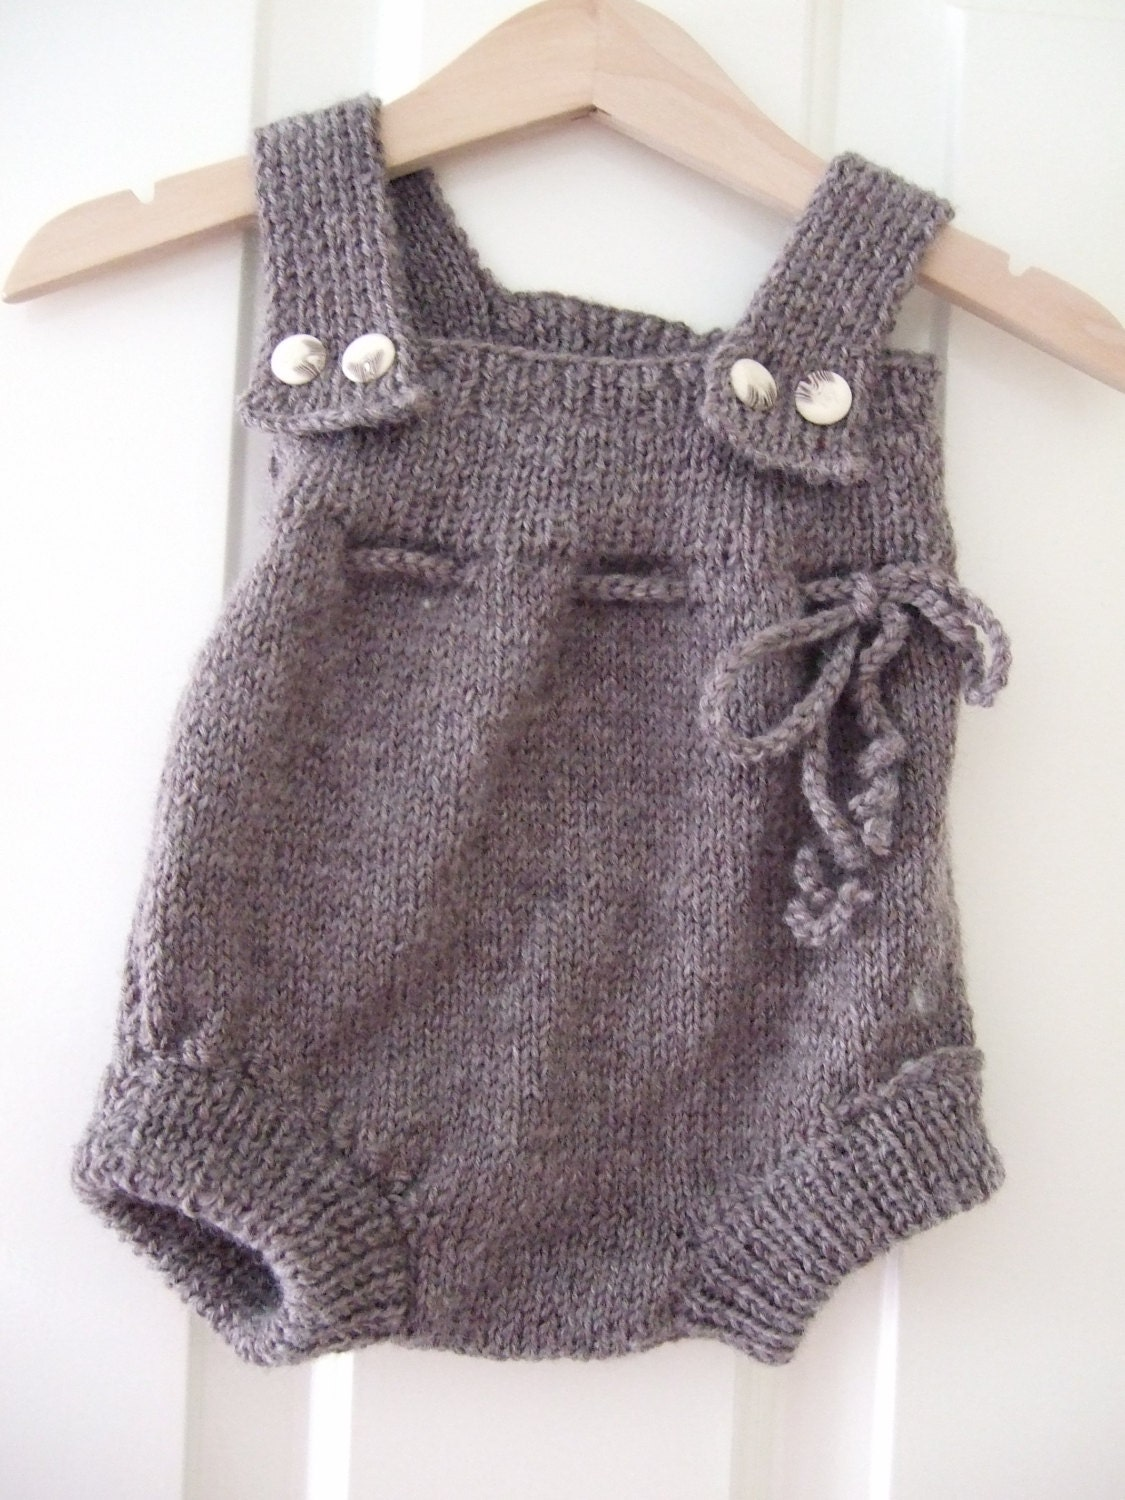 Knitting Patterns For Baby Jumpsuits : Dining & Serving